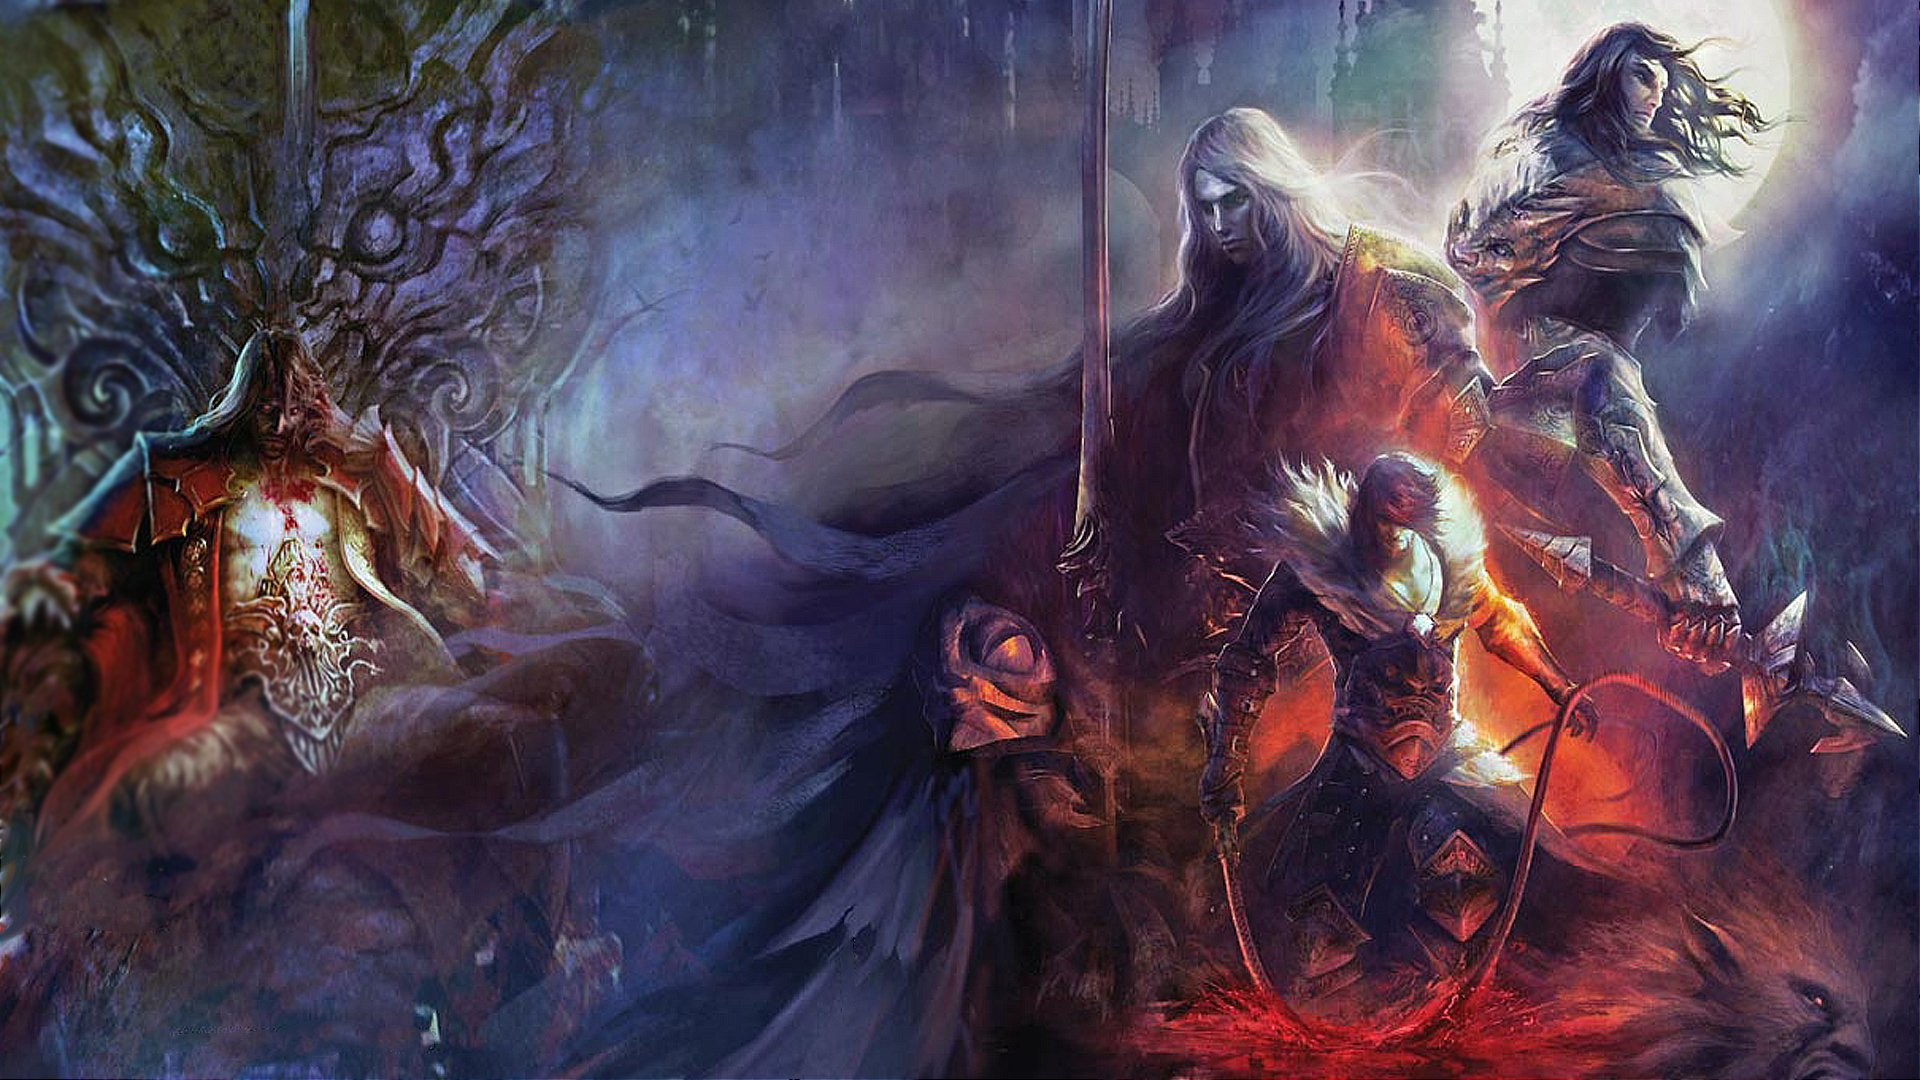 1920x1080 Hd Wallpaper Background Image: Castlevania Full HD Wallpaper And Background Image